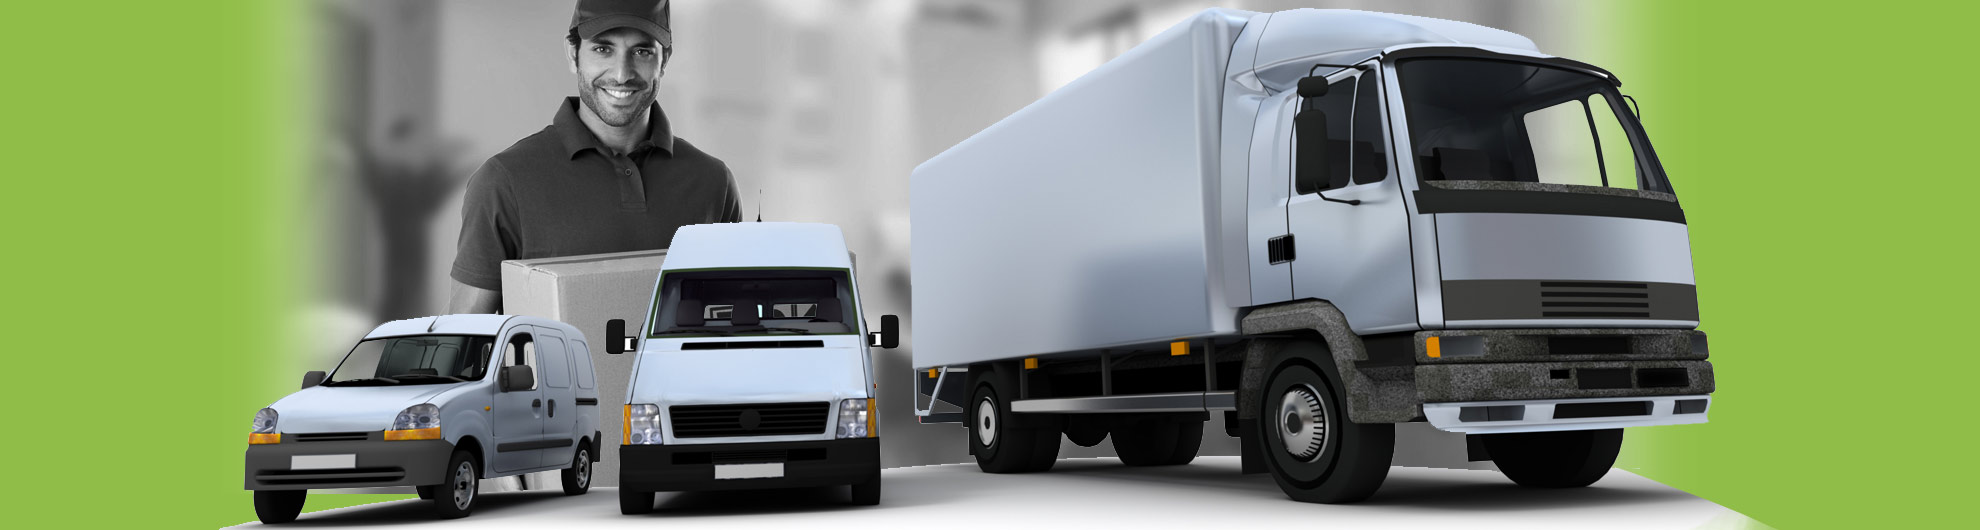 Gore  International Movers - Shipping Companies